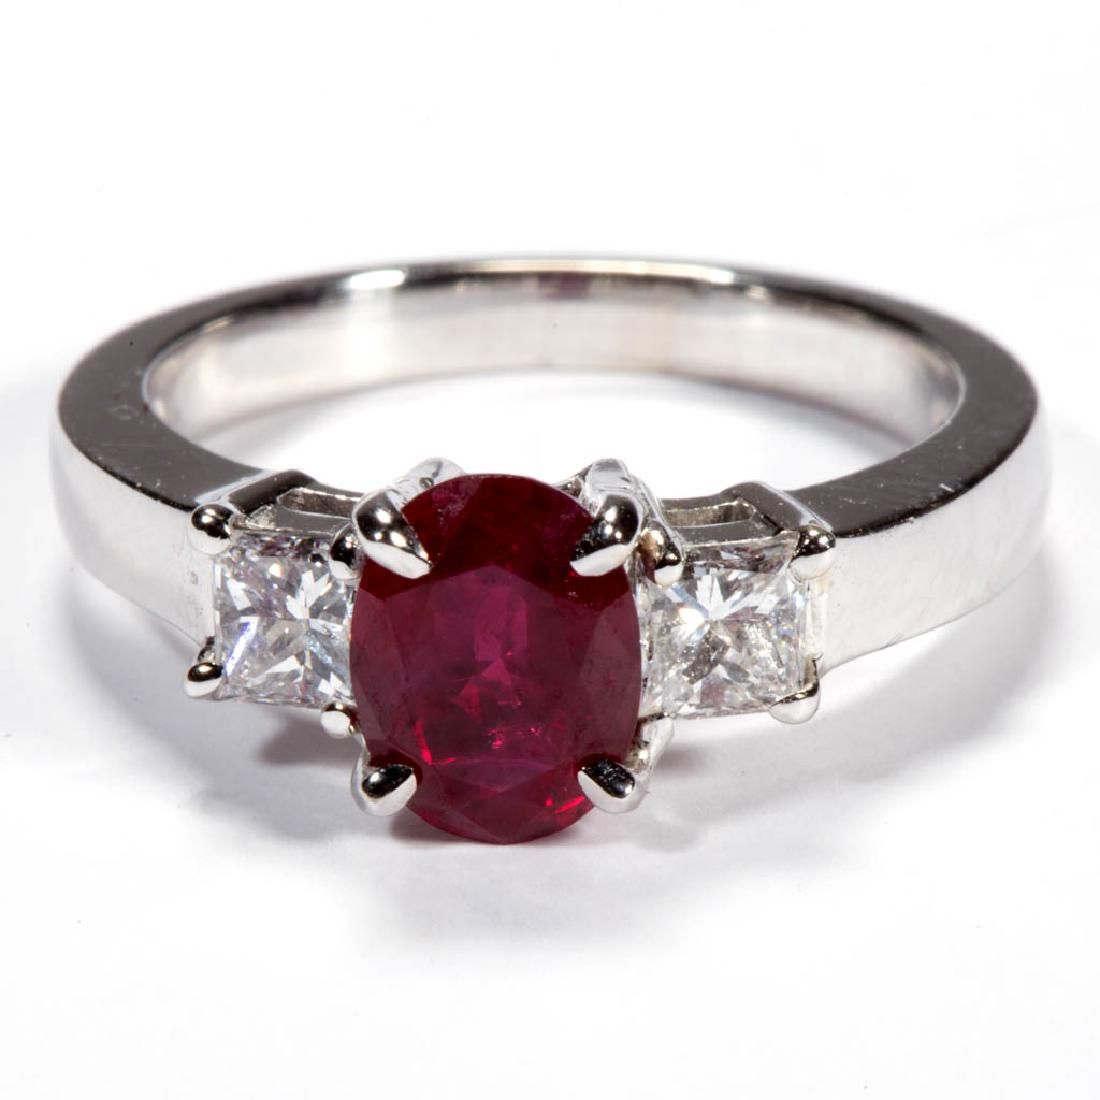 VINTAGE 14K WHITE GOLD, RUBY, AND DIAMOND LADY'S